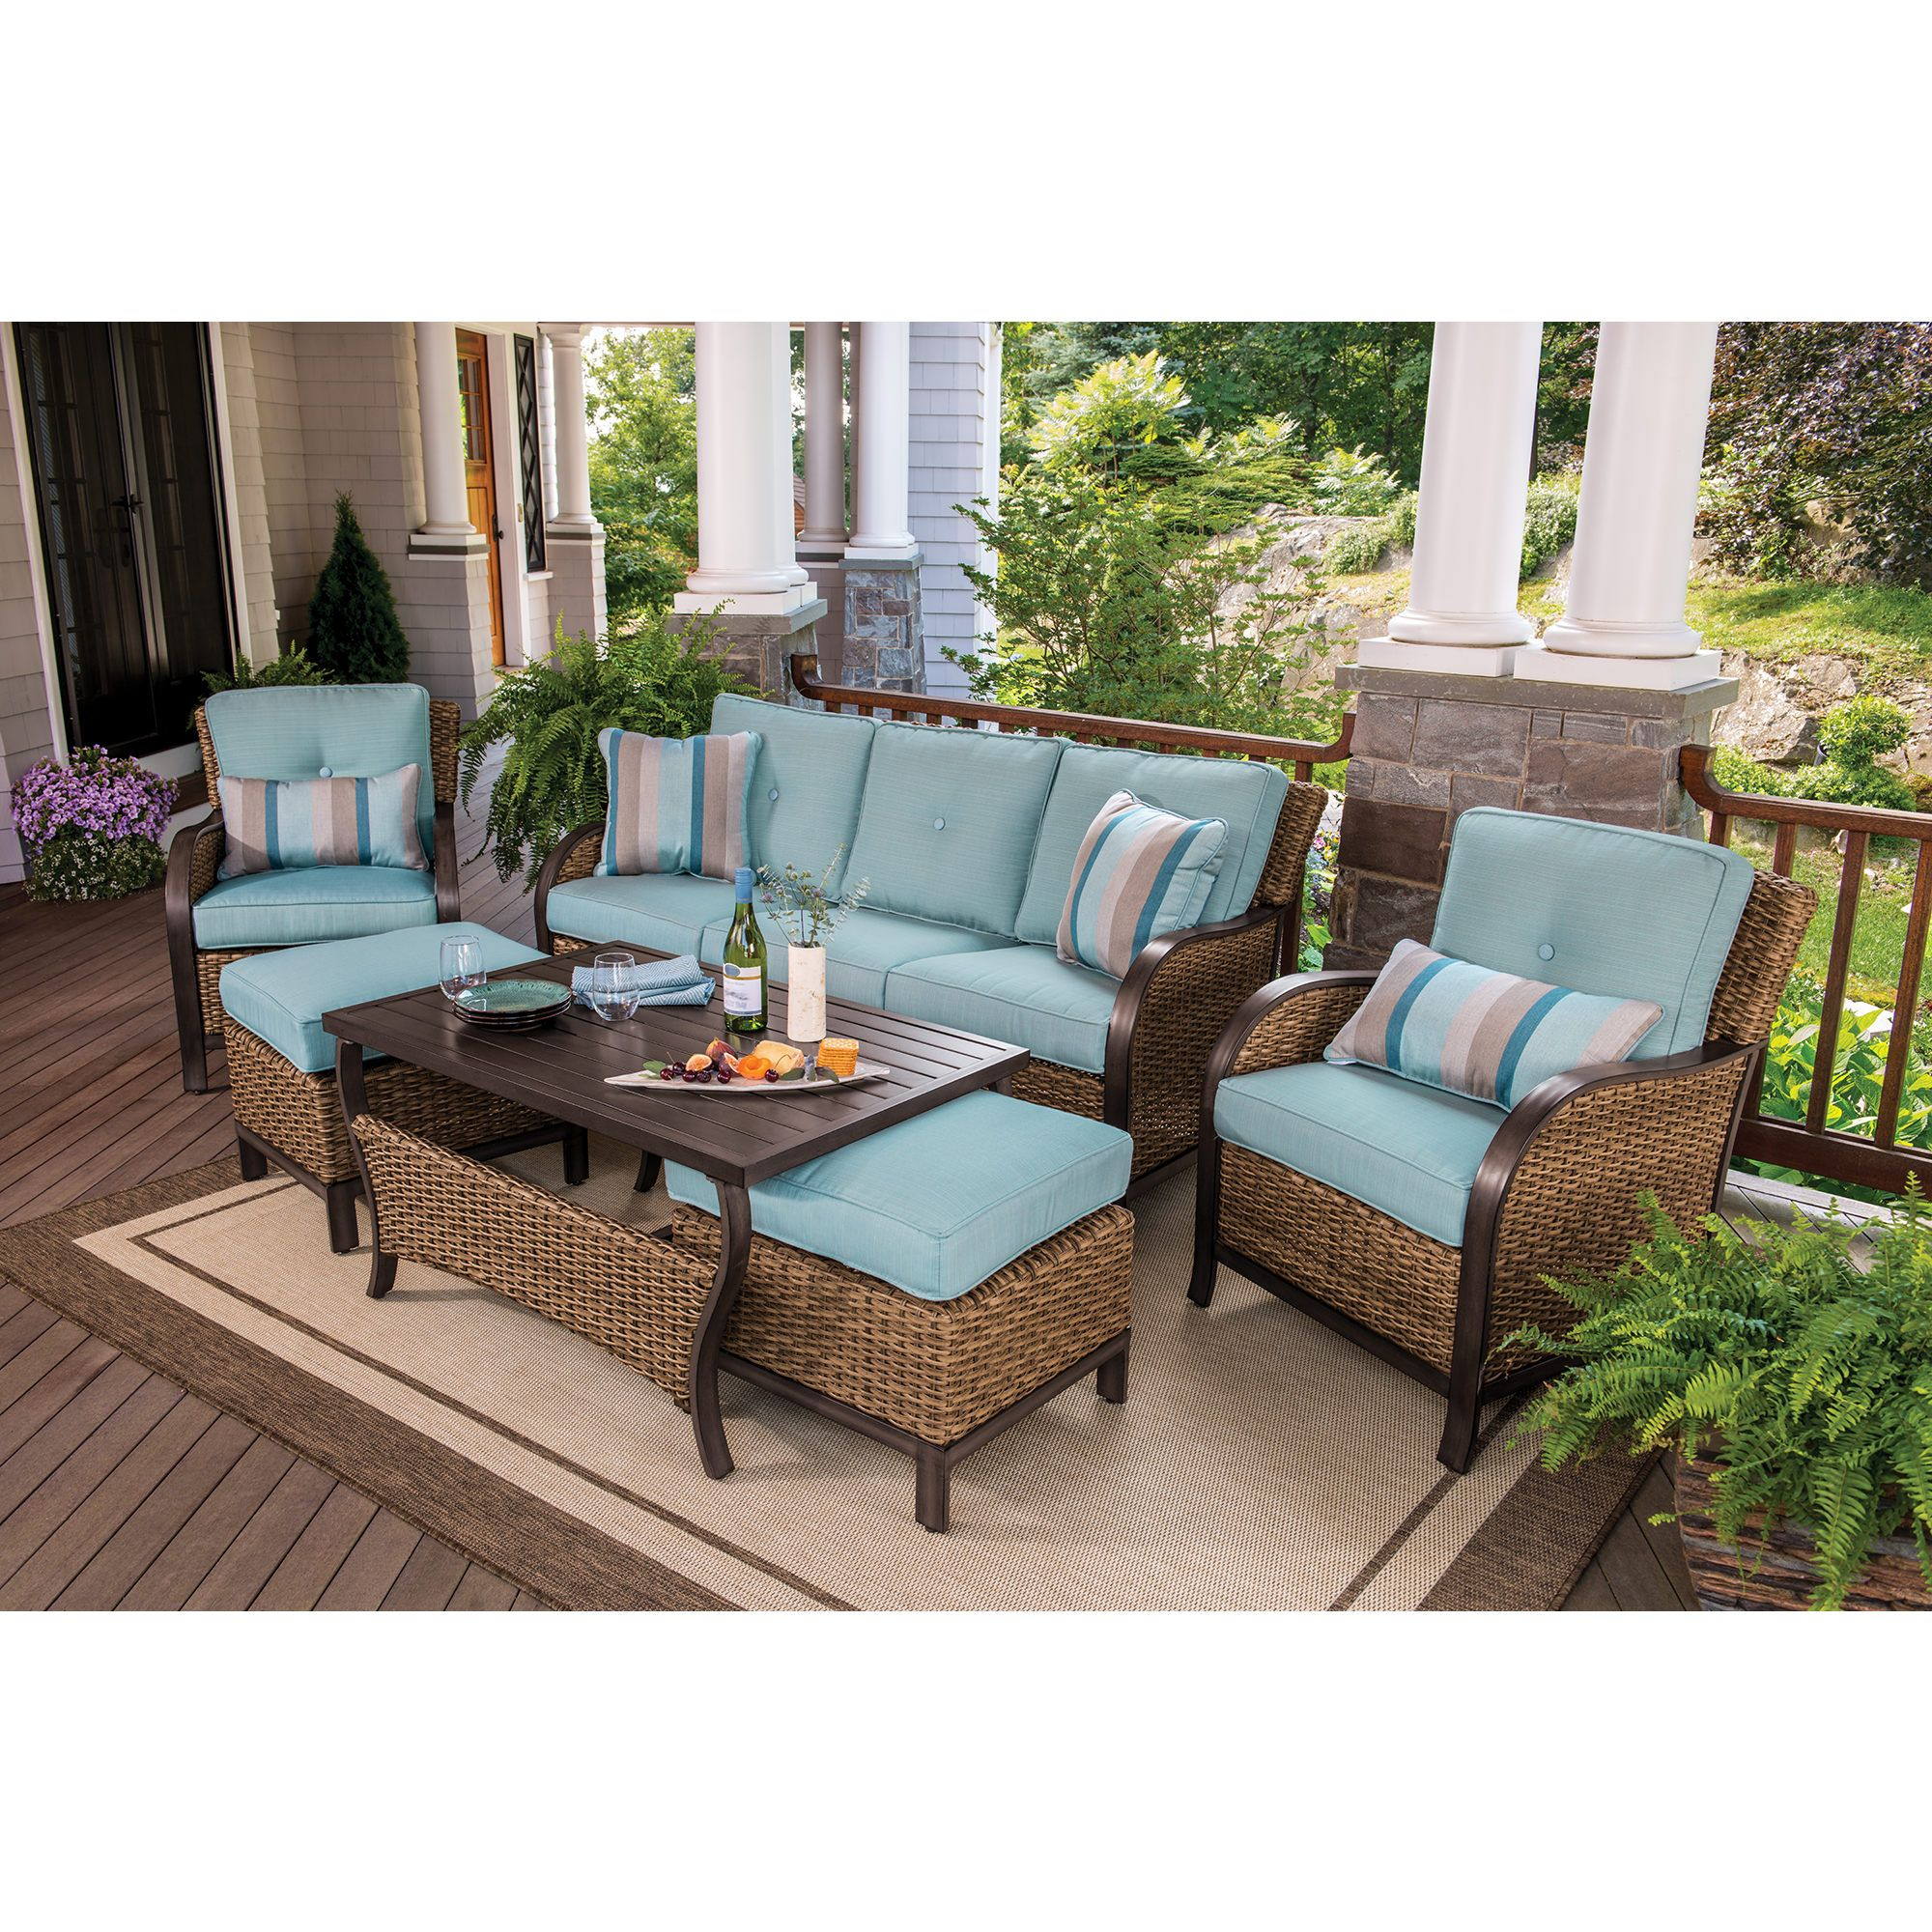 piece patio p tacana with st seating deep cushions bay beige hampton set wicker sets conversation